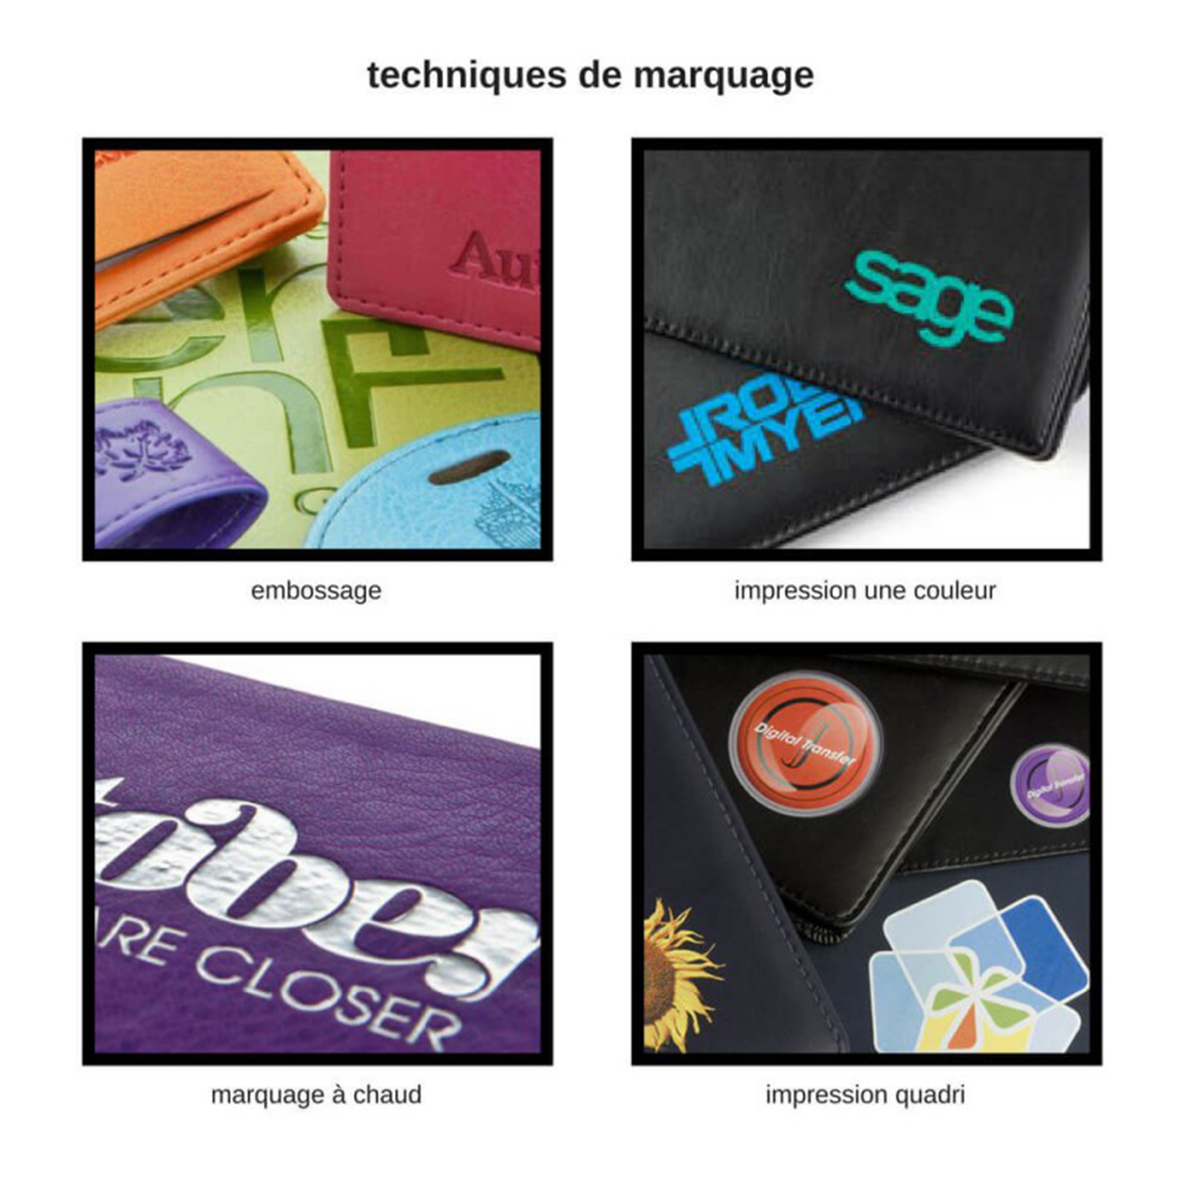 ETIQUETTE A BAGAGE_MARQUAGE